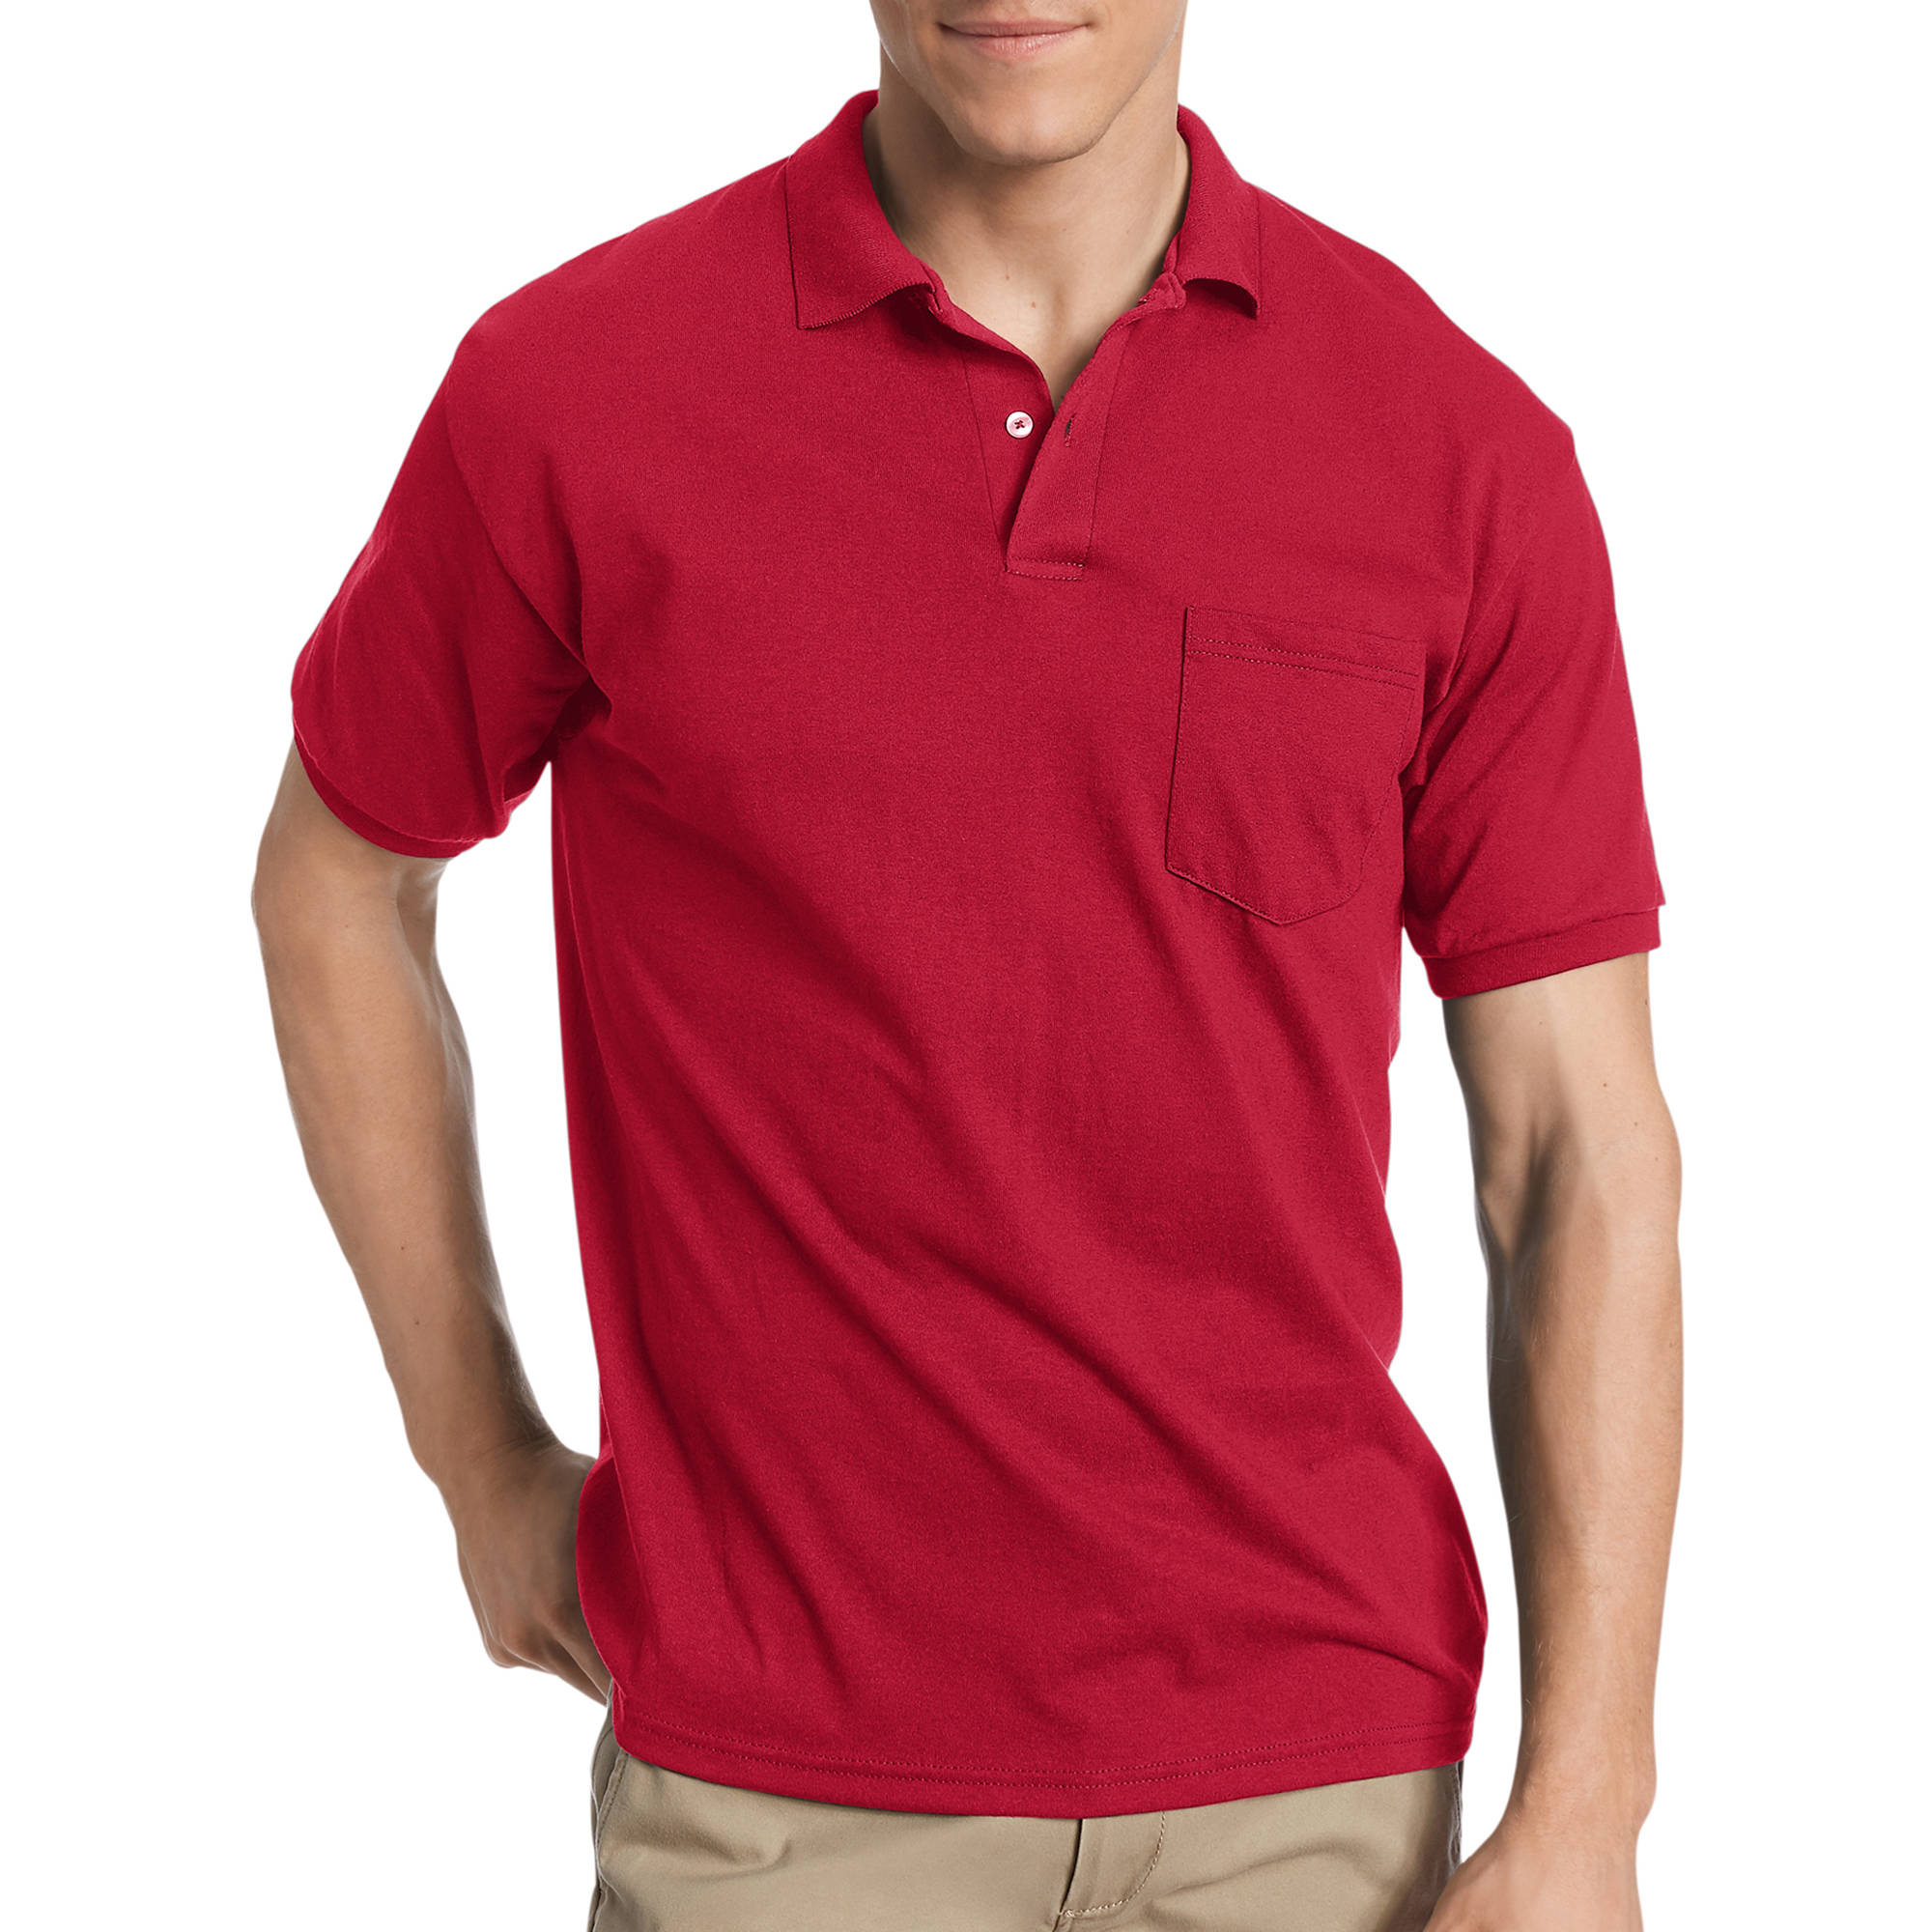 Hanes Big Men's Comfortblend EcoSmart Jersey Polo with Pocket